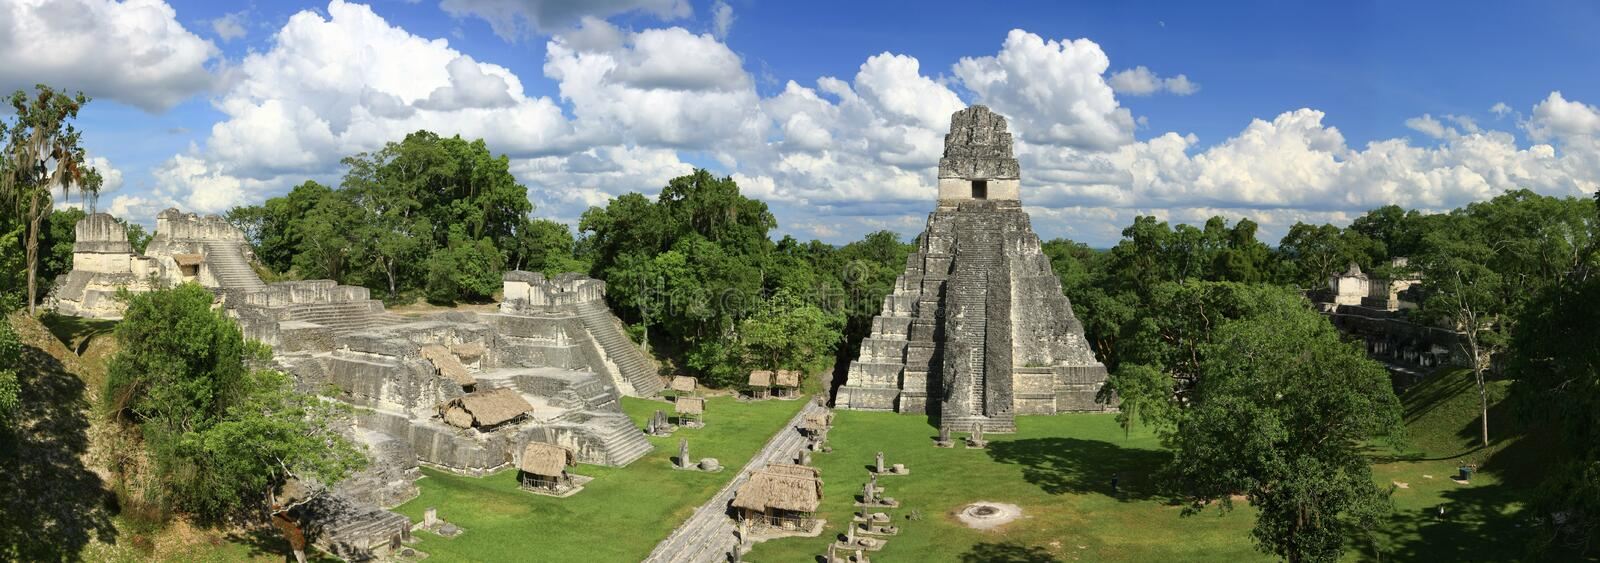 Download Tikal Temples stock image. Image of green, guatemala - 13562817